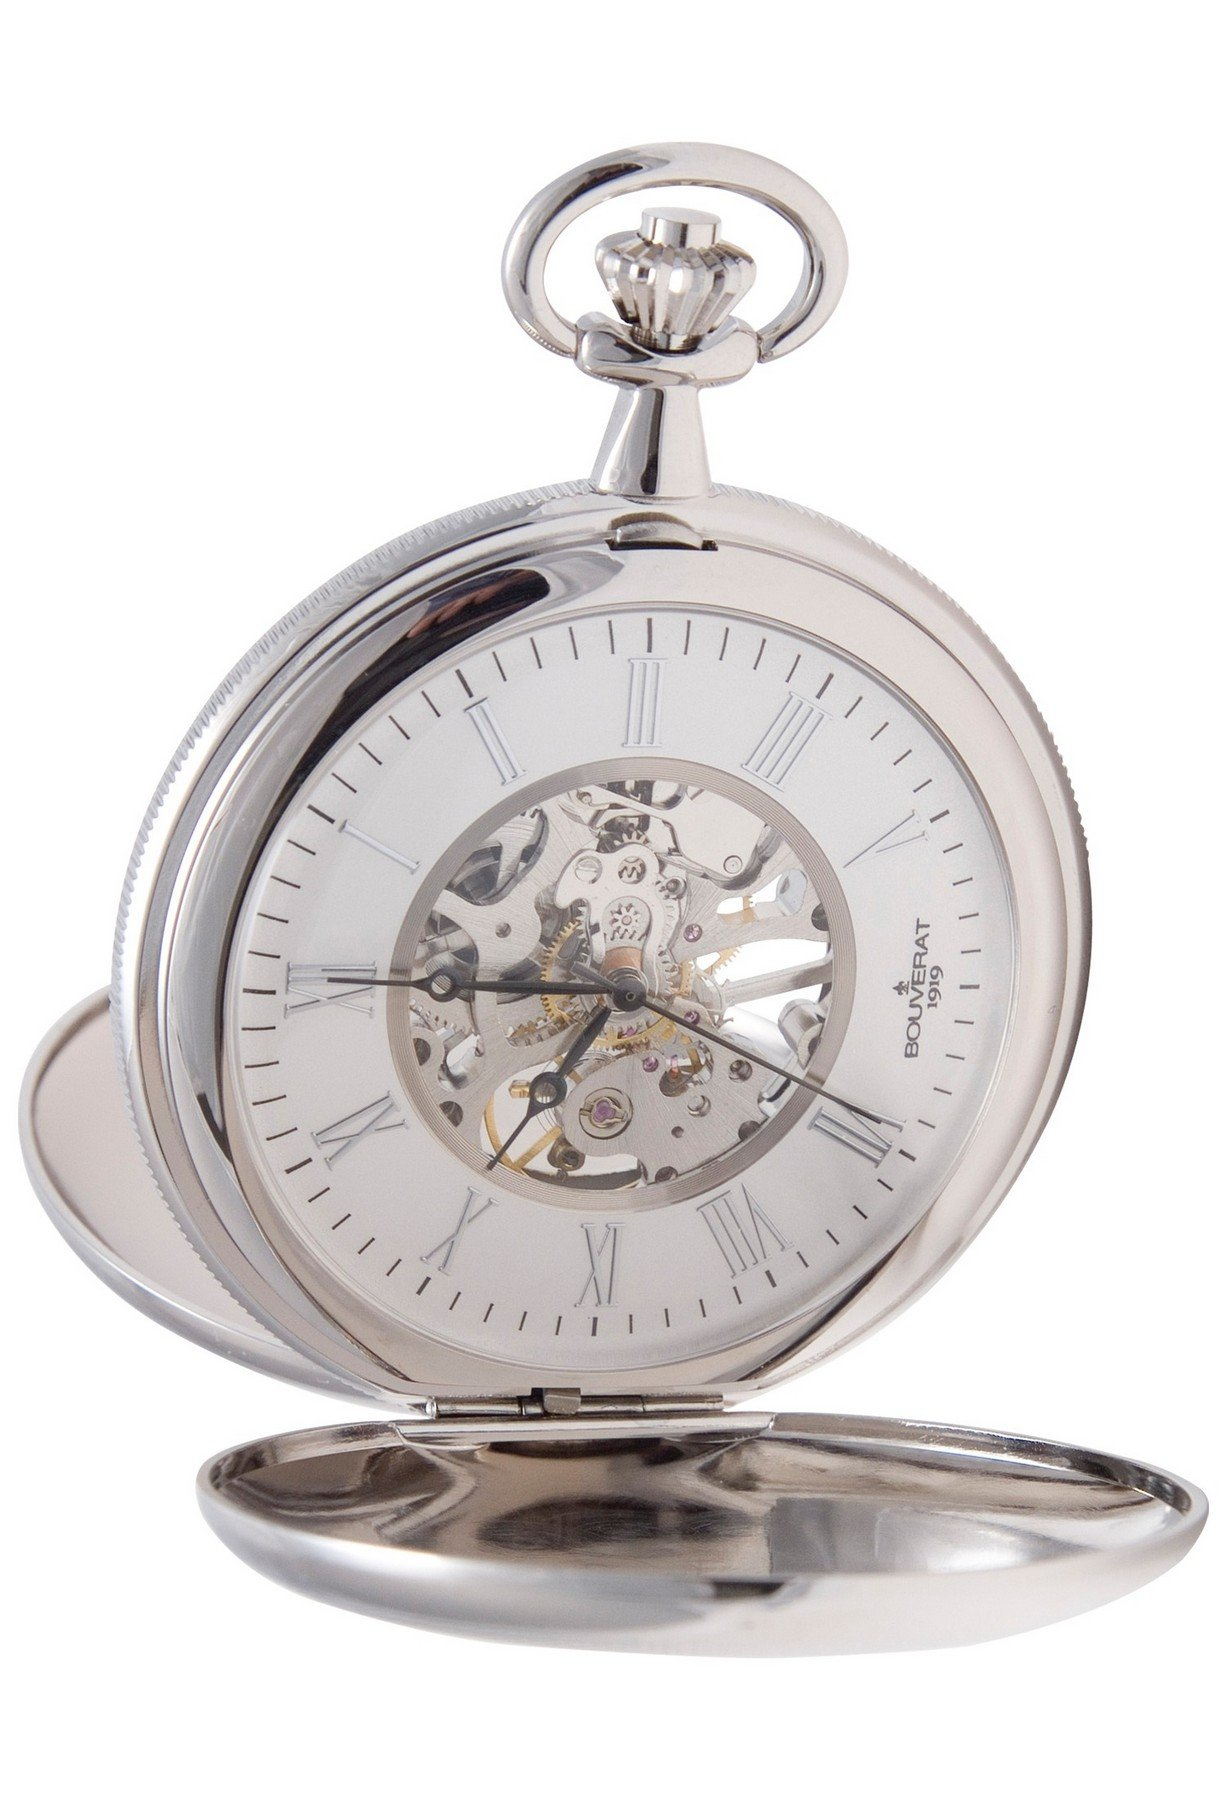 Bouverat 1919 Double Opening Shield Case Full Hunter Mechanical Roman Pocket Watch with Silver Dial BV824205